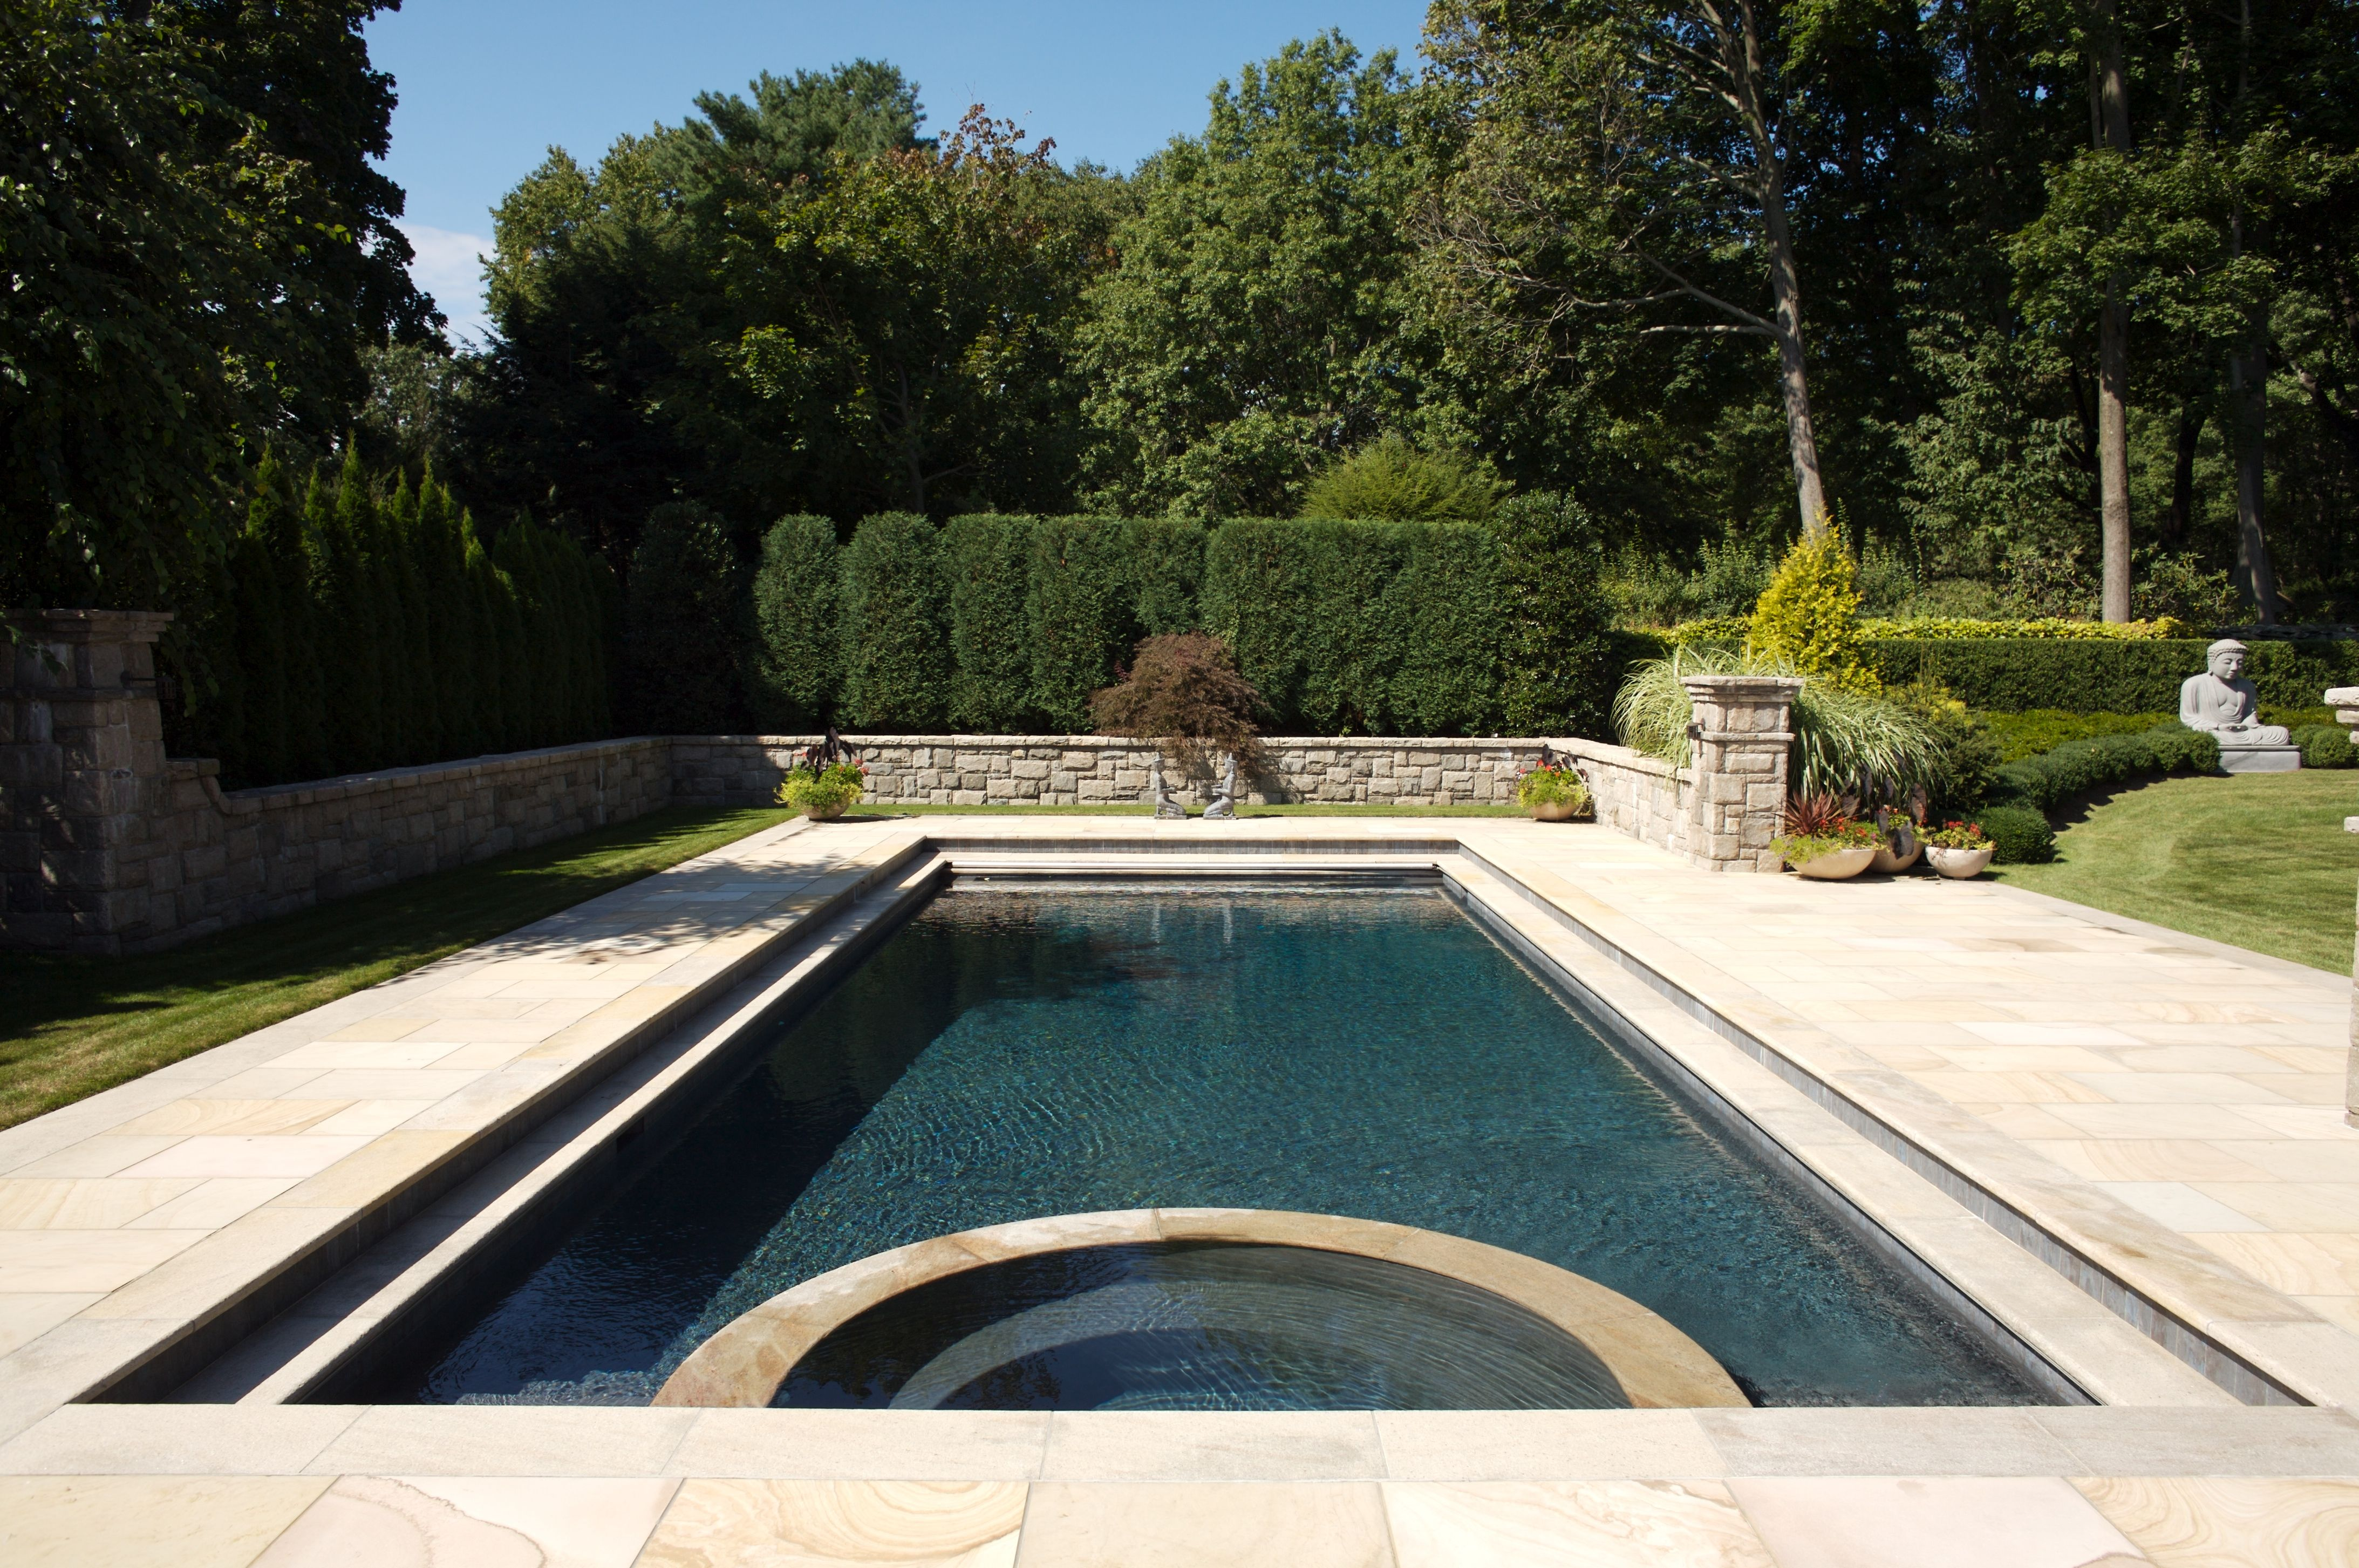 A Low Sitting Wall Wraps Around The Rectangular Pool